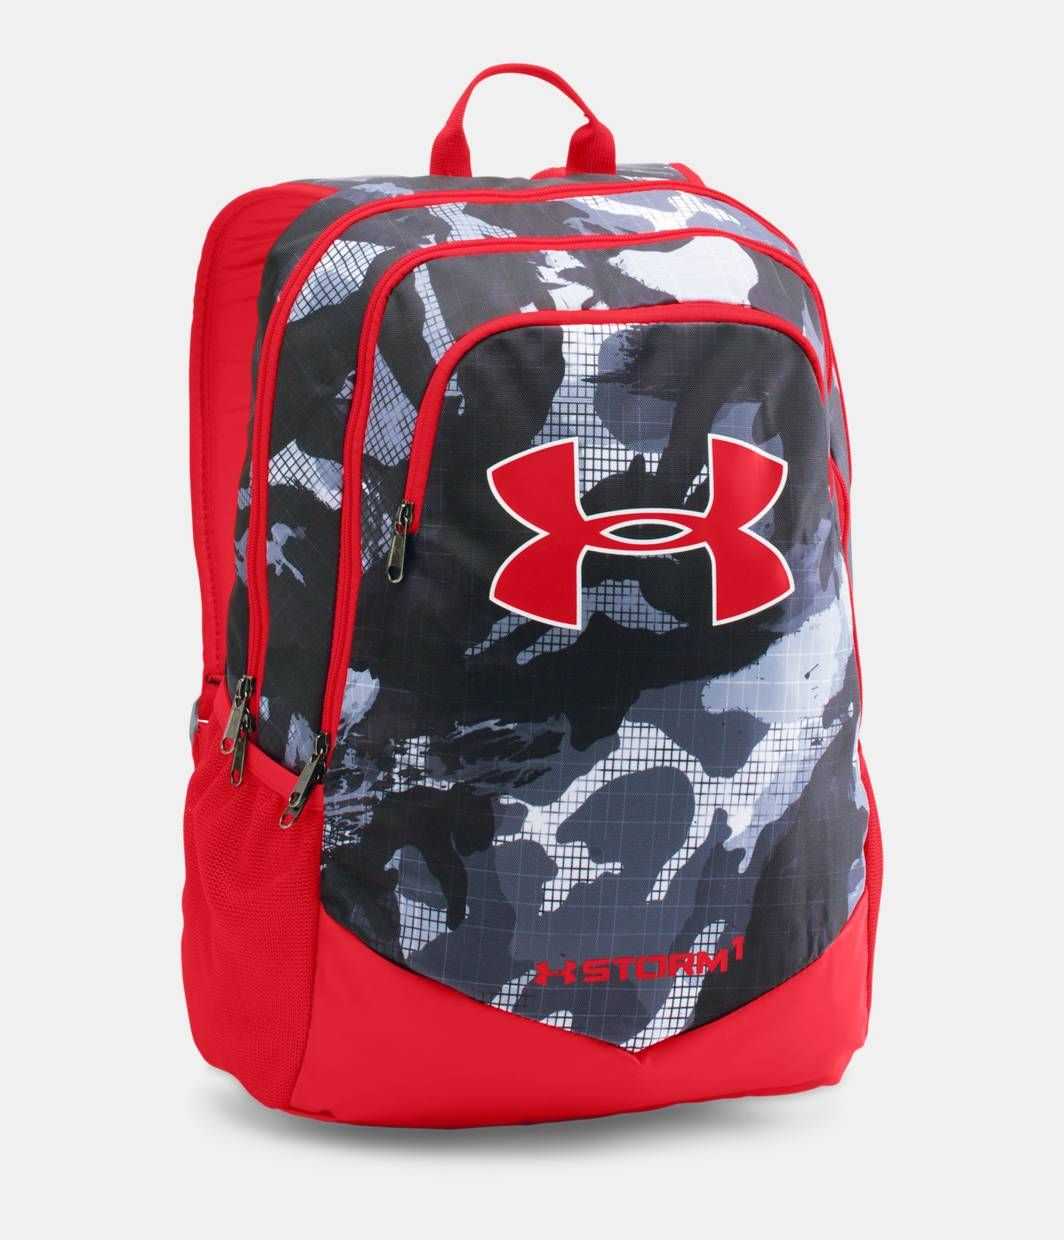 50d82f4986 Shop Under Armour for Boys  UA Storm Scrimmage Backpack in our Unisex-Youth  Backpacks department. Free shipping is available in US.